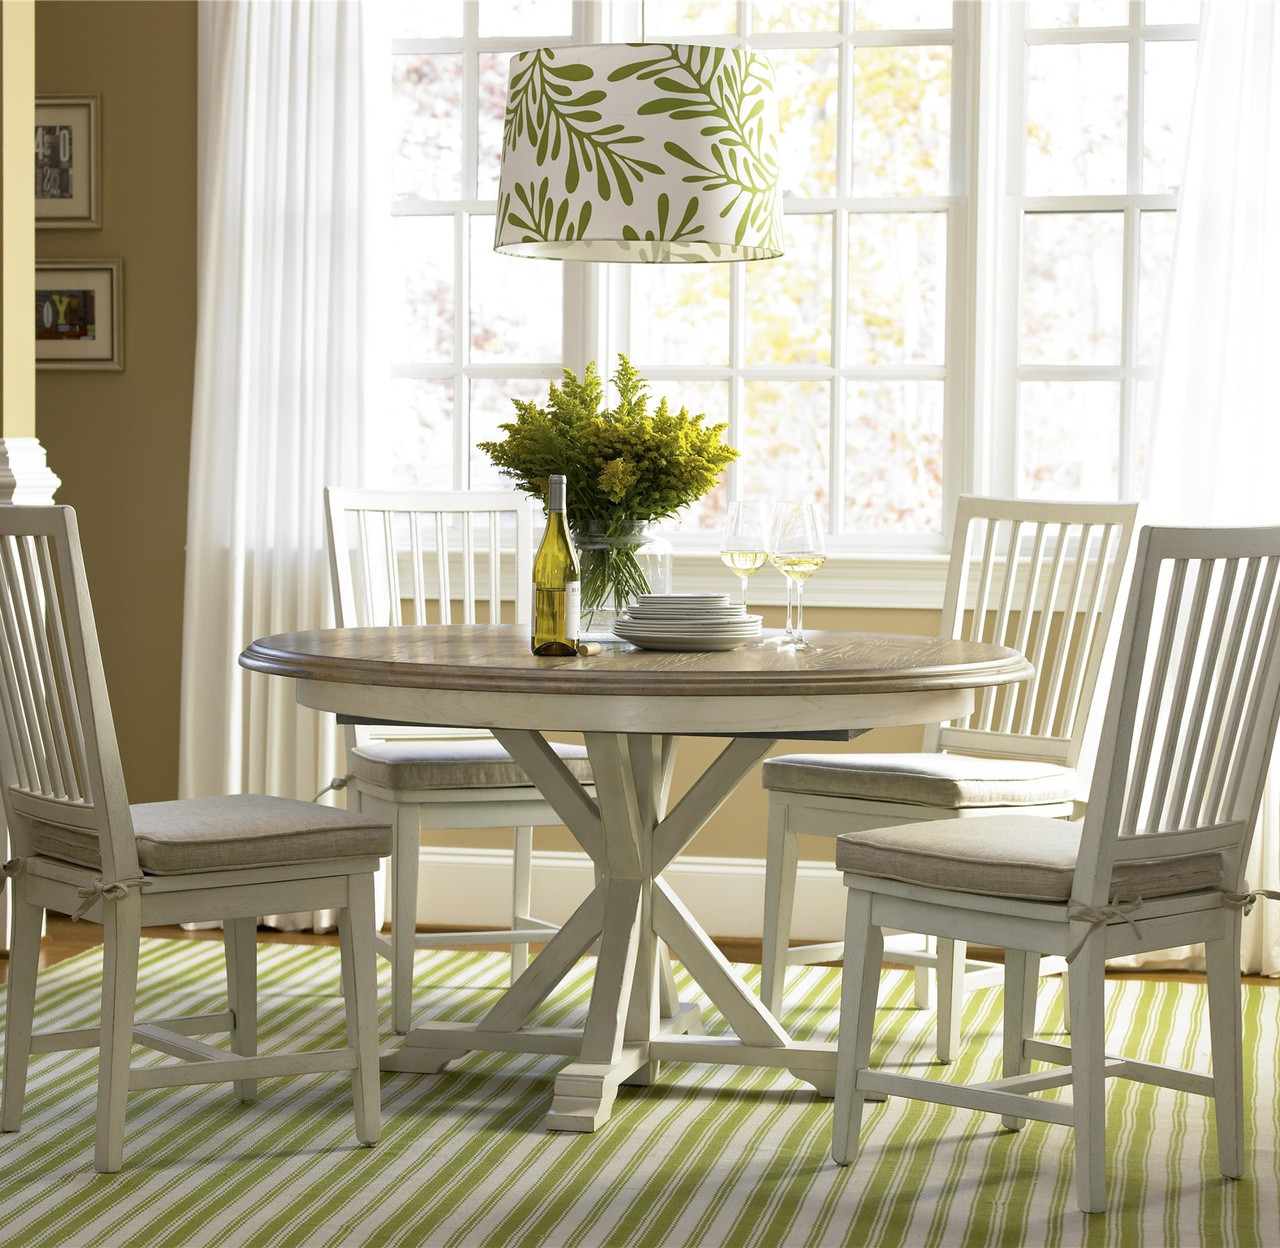 Attractive Coastal Beach White Oak Round Dining Room Set